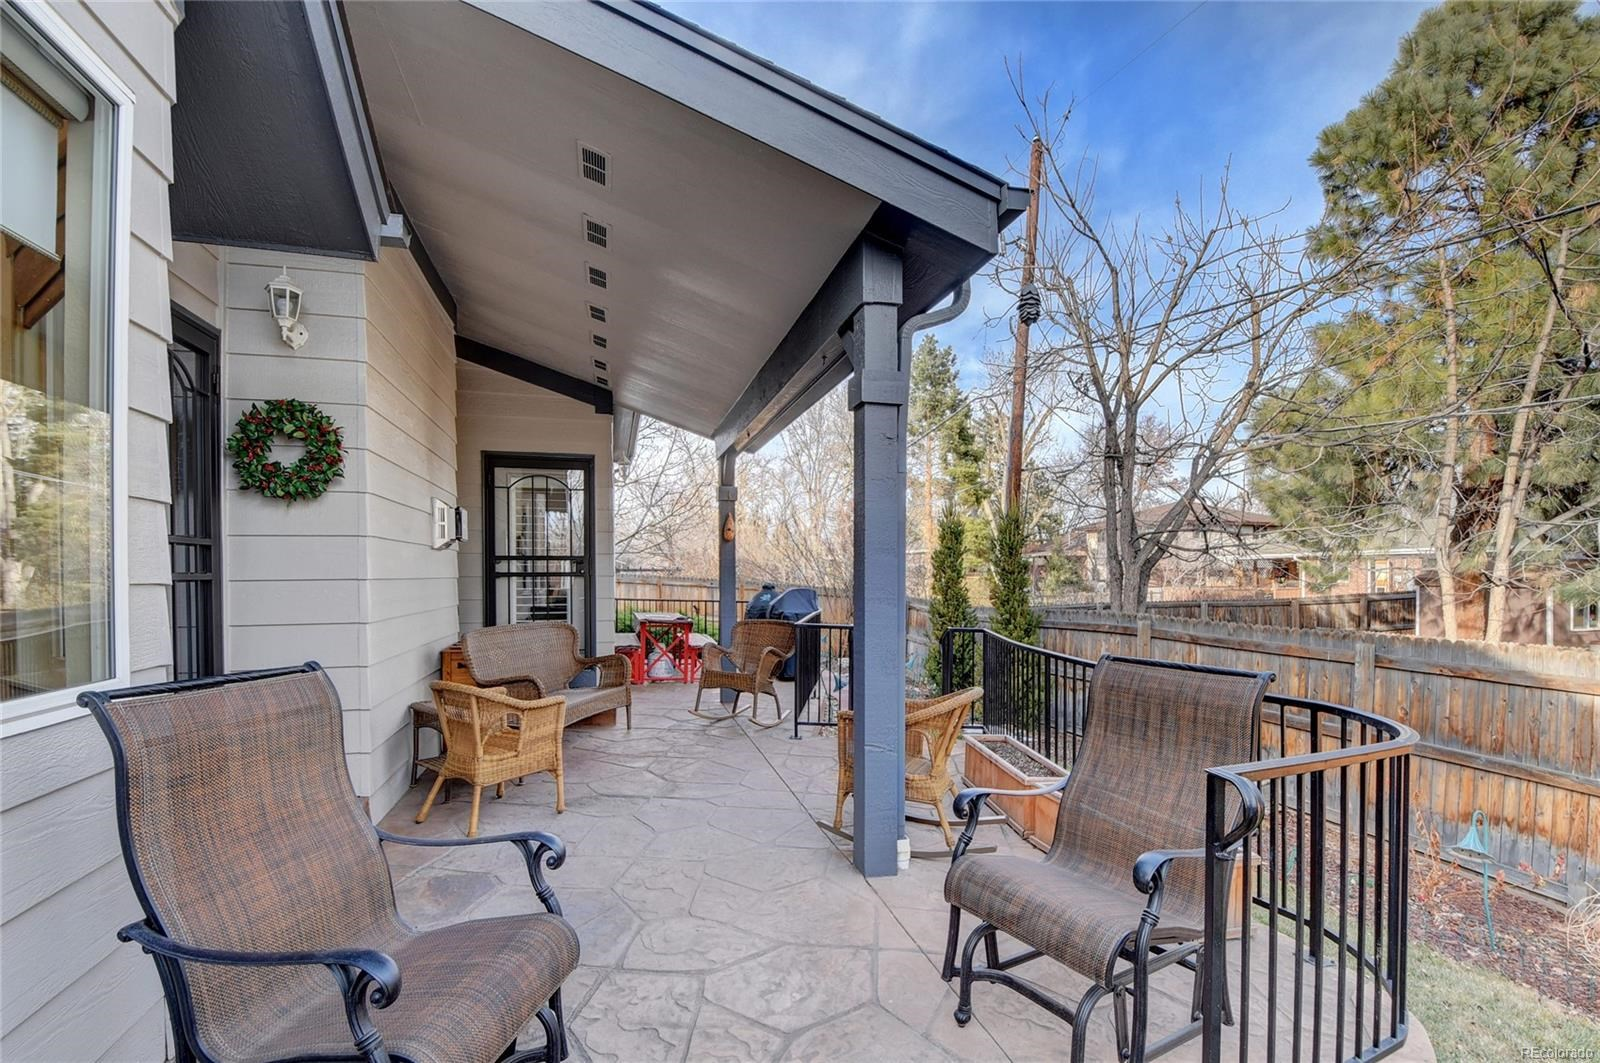 MLS# 9913436 - 36 - 5726 W 81st Place, Arvada, CO 80003